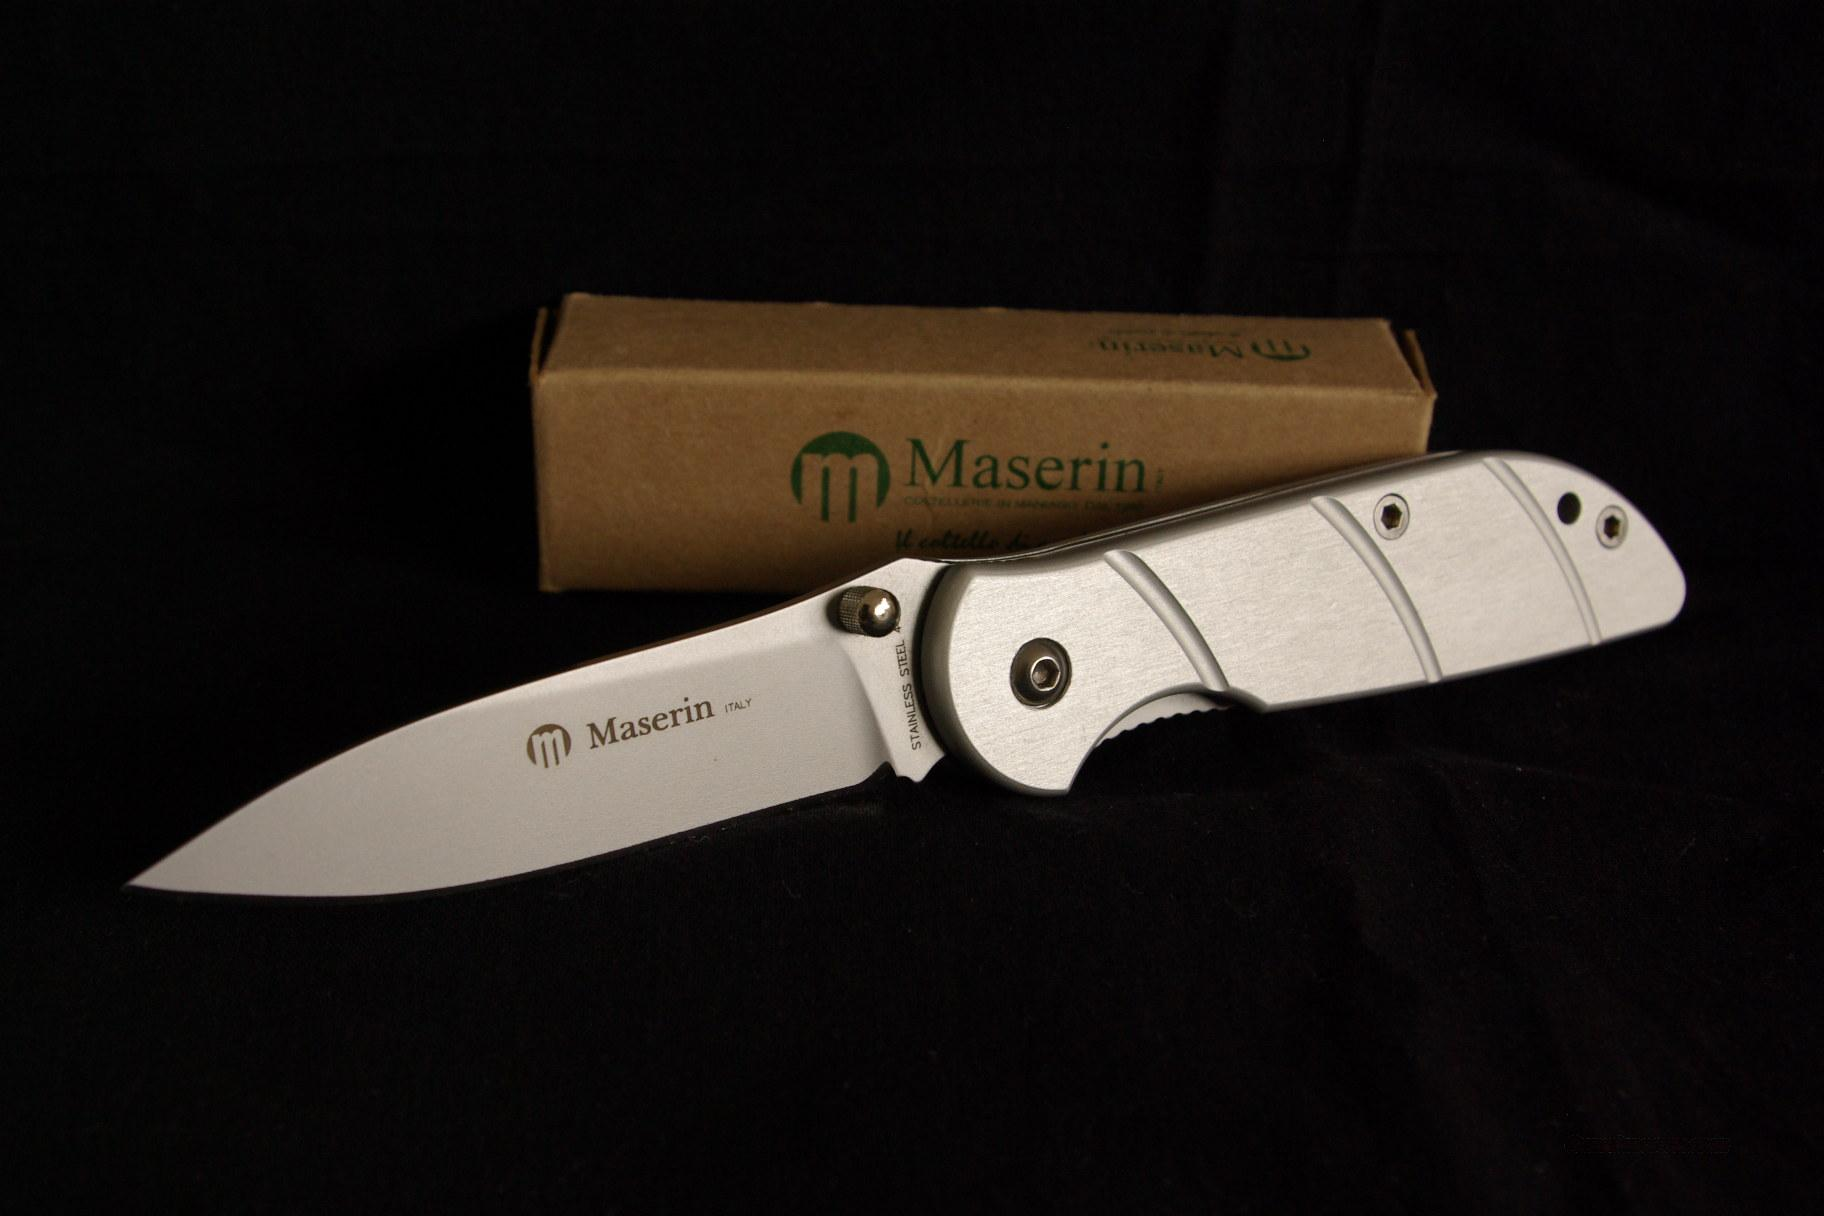 Maserin Knife (collectible) Made in Italy  Non-Guns > Knives/Swords > Knives > Folding Blade > Imported